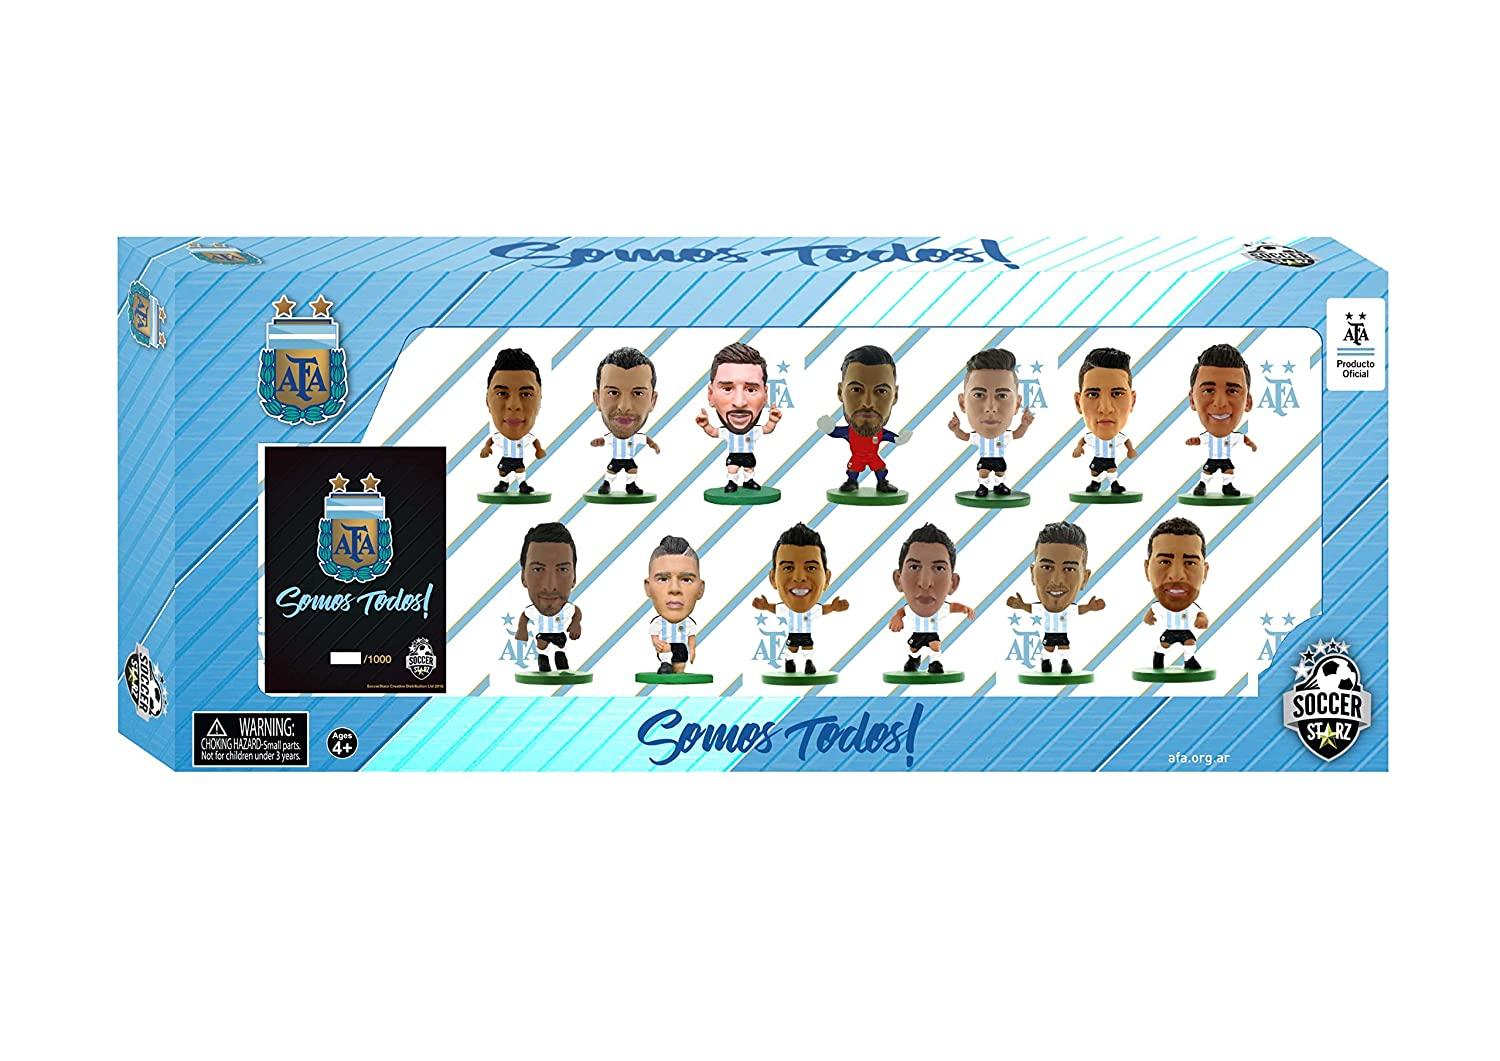 SoccerStarz ARGTP18 Argentina 13 Player Team Pack 2018 Edition Figure